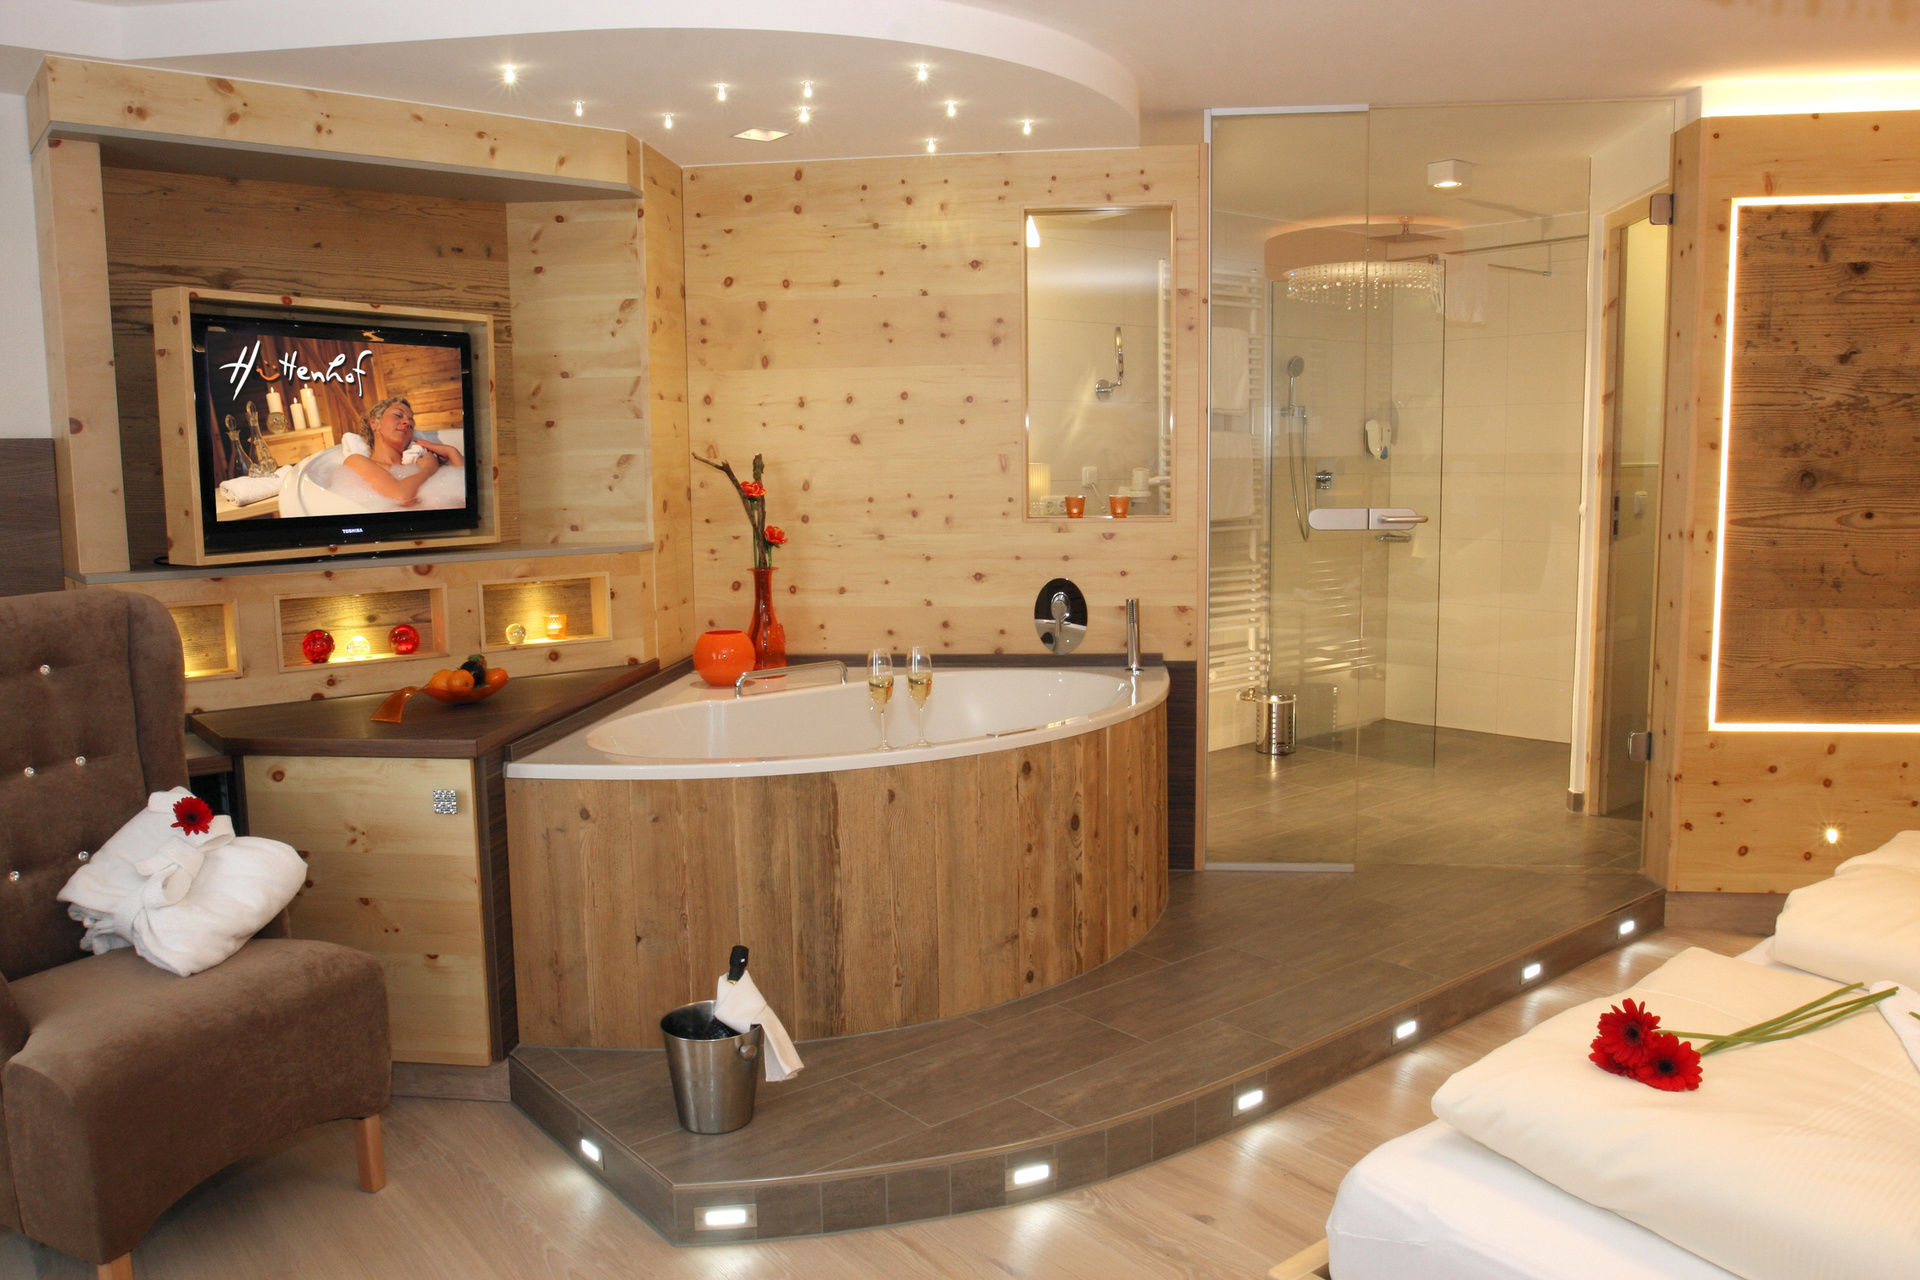 Zimmer Küche Bad Bar Heidelberg Wellness Double Room Quotharmonie Deluxe Quot Wellnesshotel